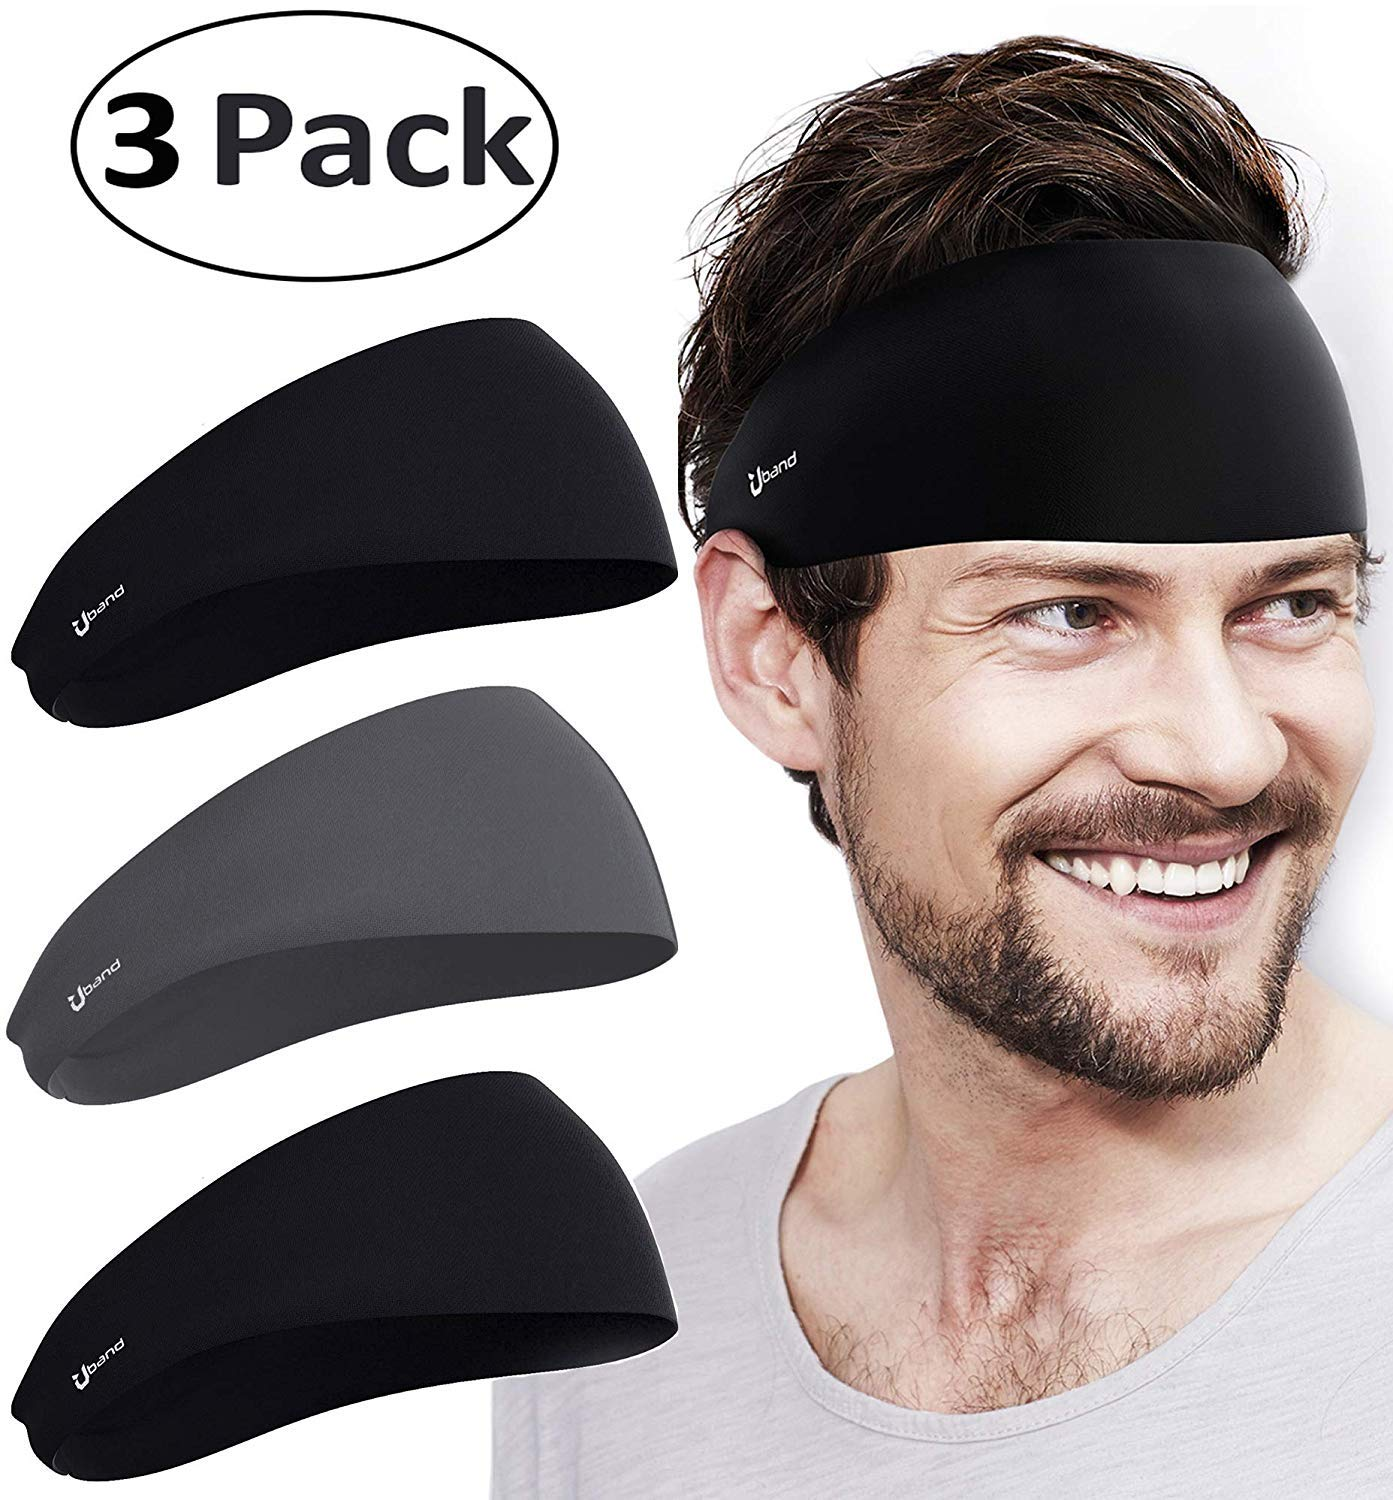 Self Pro Mens Headbands 3 Pack Guys Sweatband & Sports Headband for Running, Cross Training, Racquetball, Working Out - Performance Stretch & Moisture Wicking by Self Pro